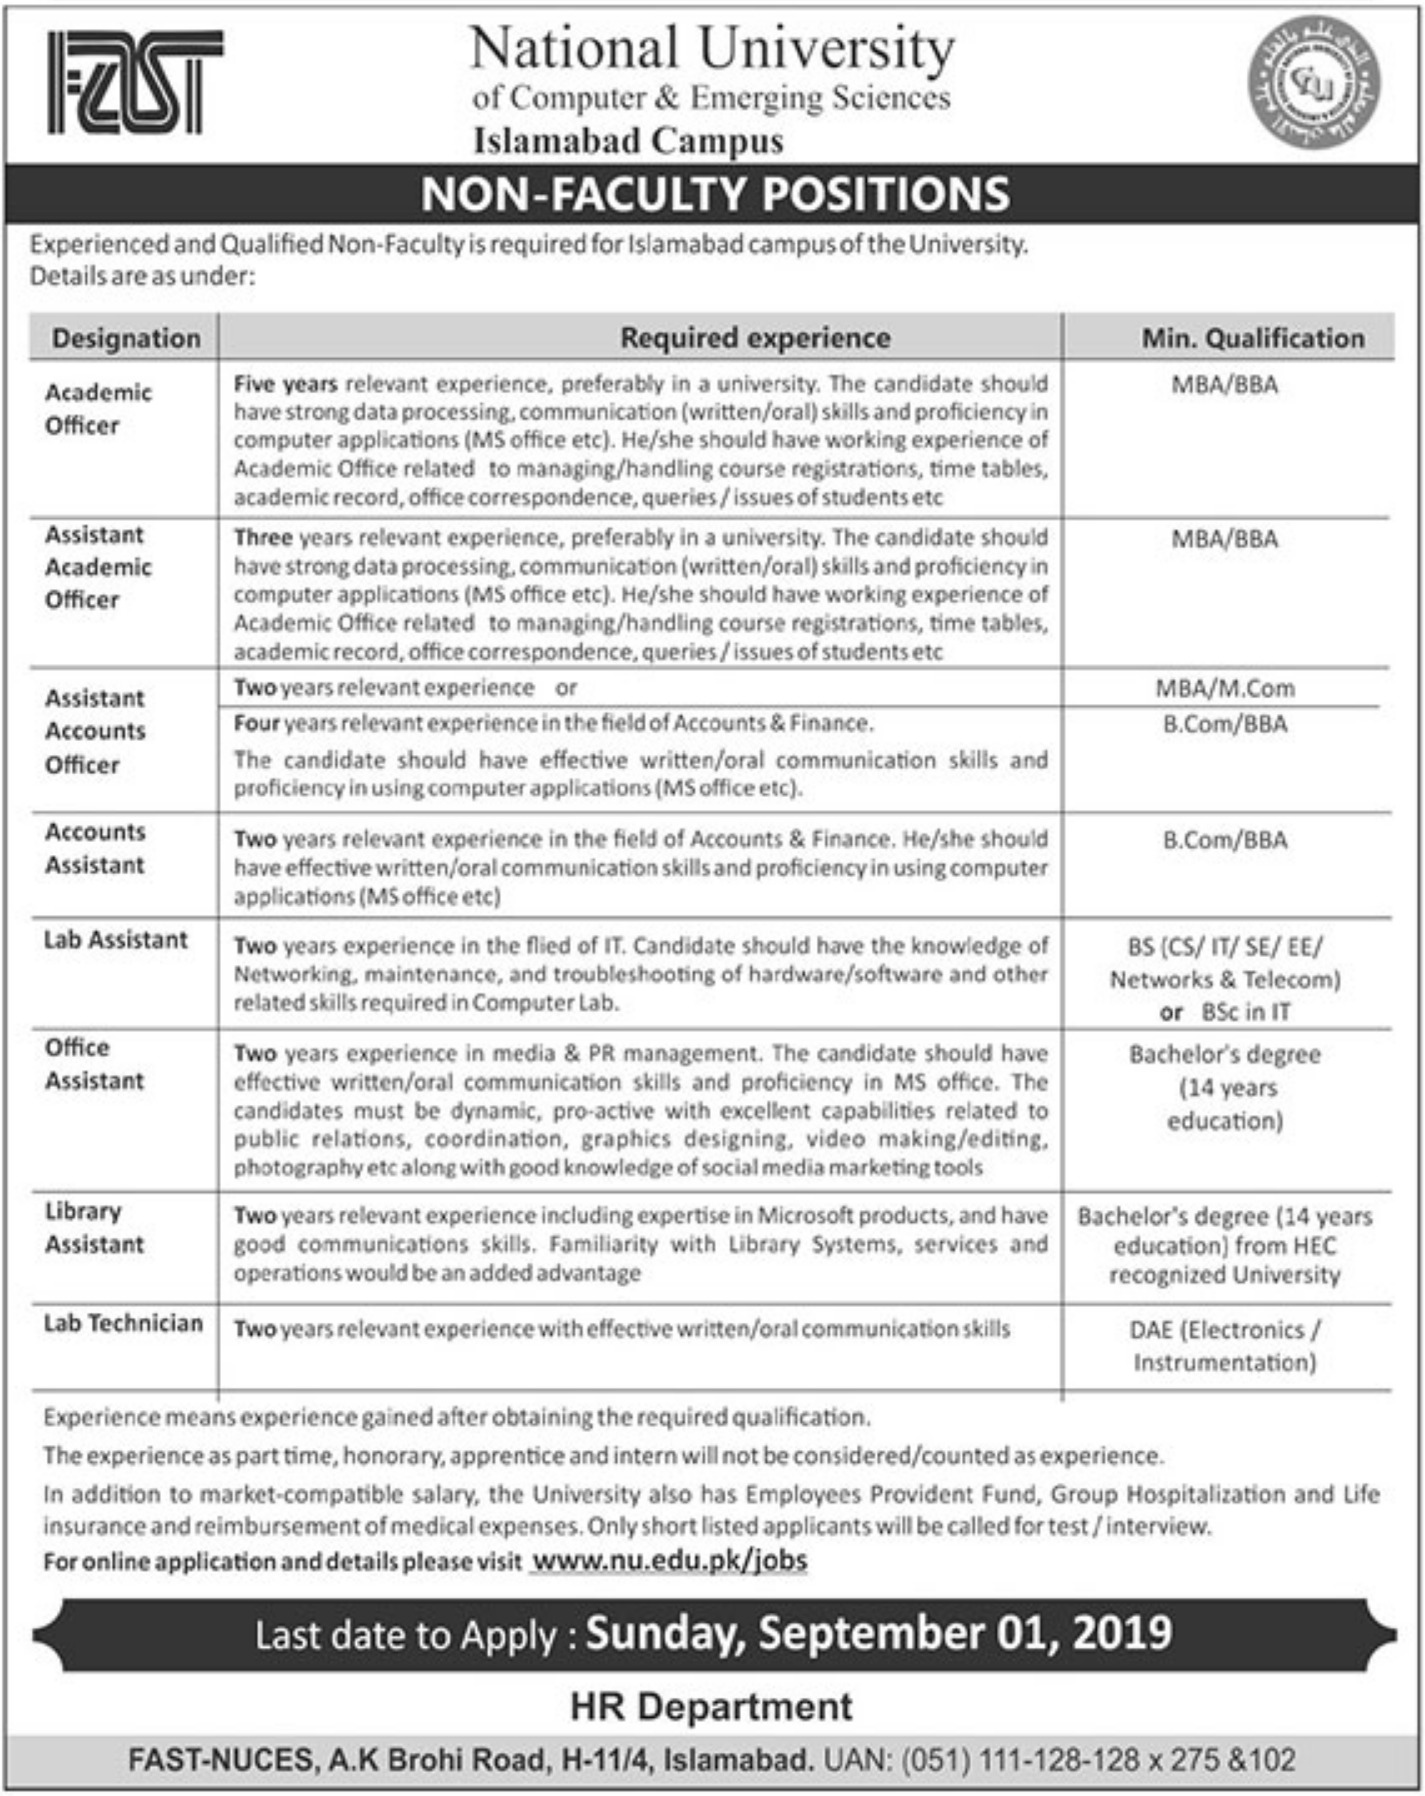 National University of Computer & Emerging Sciences Jobs 2019 Apply Online